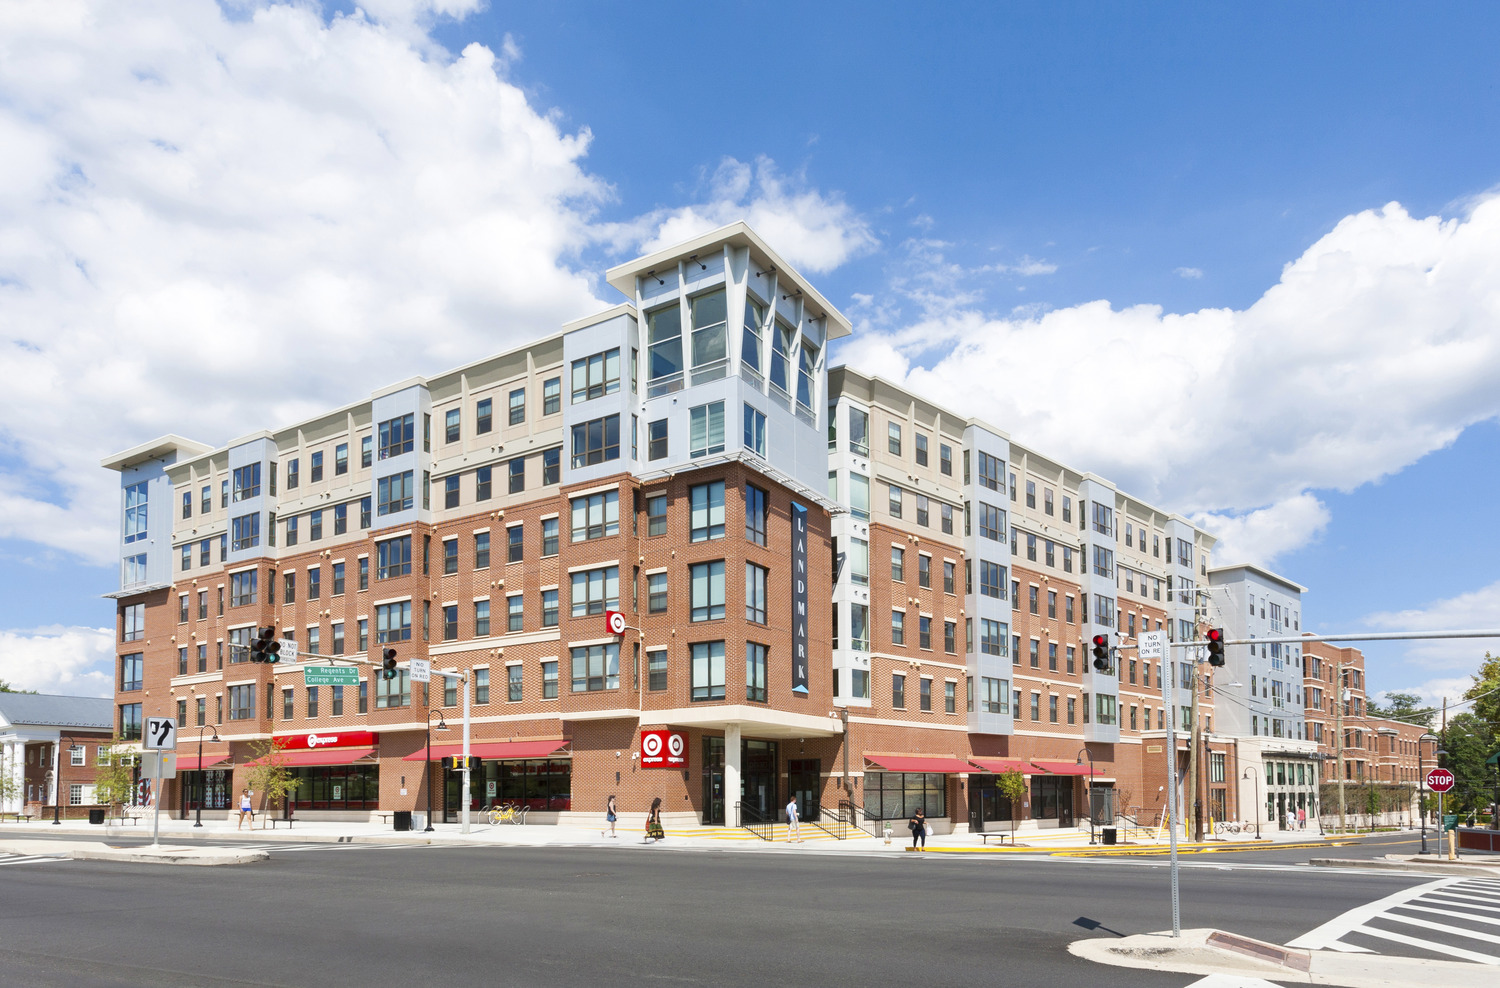 CBG builds Landmark College Park, a 283-Unit, 843-Bed Student Housing Community with Retail in College Park, MD - Image #1